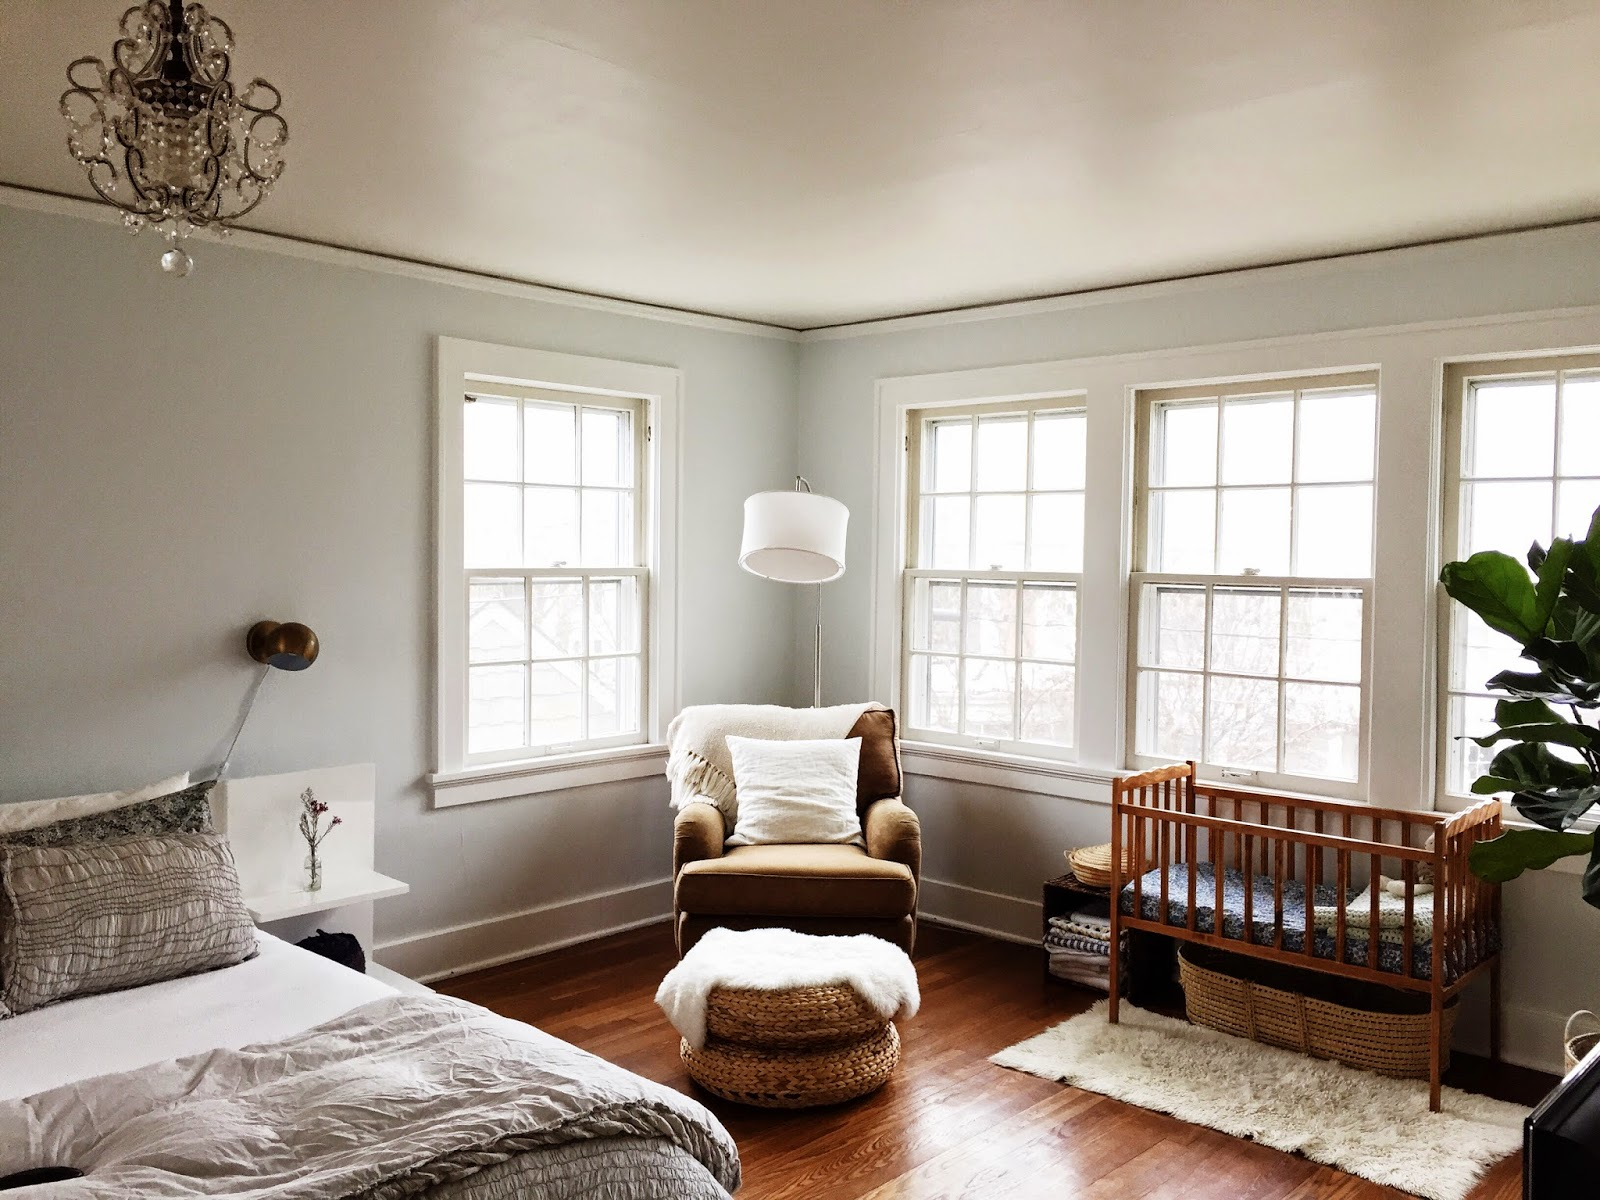 Homestead shared nursery master bedroom tour it 39 s the little things bloglovin Master bedroom plus nursery